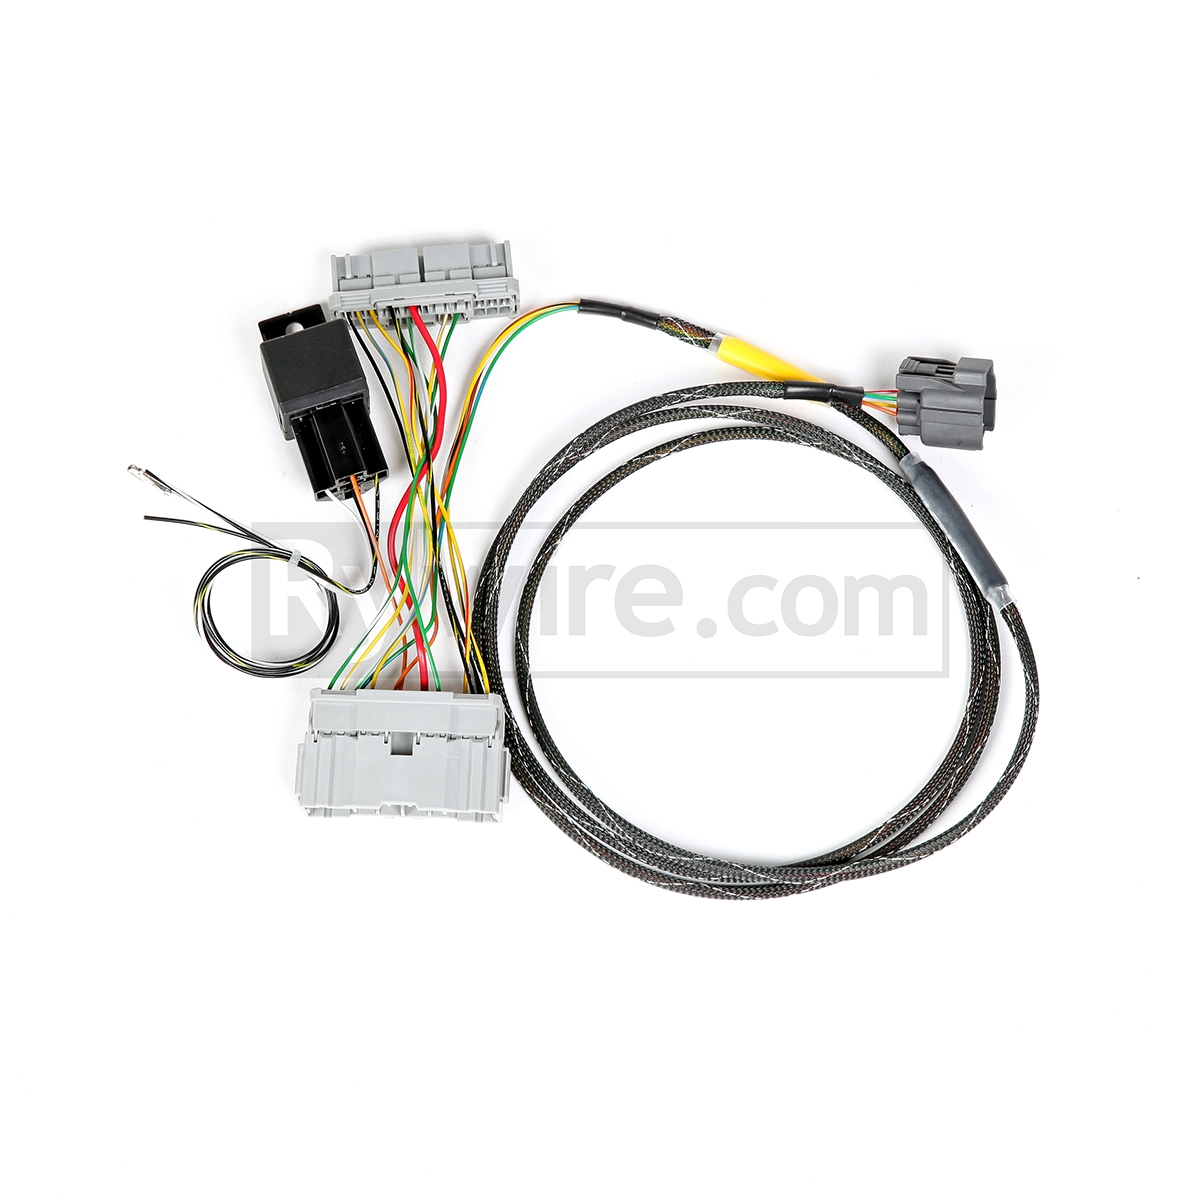 01 05 civic k series conversion harness subaru wiring harness conversion rywire motorsport electronics [ 1200 x 1200 Pixel ]